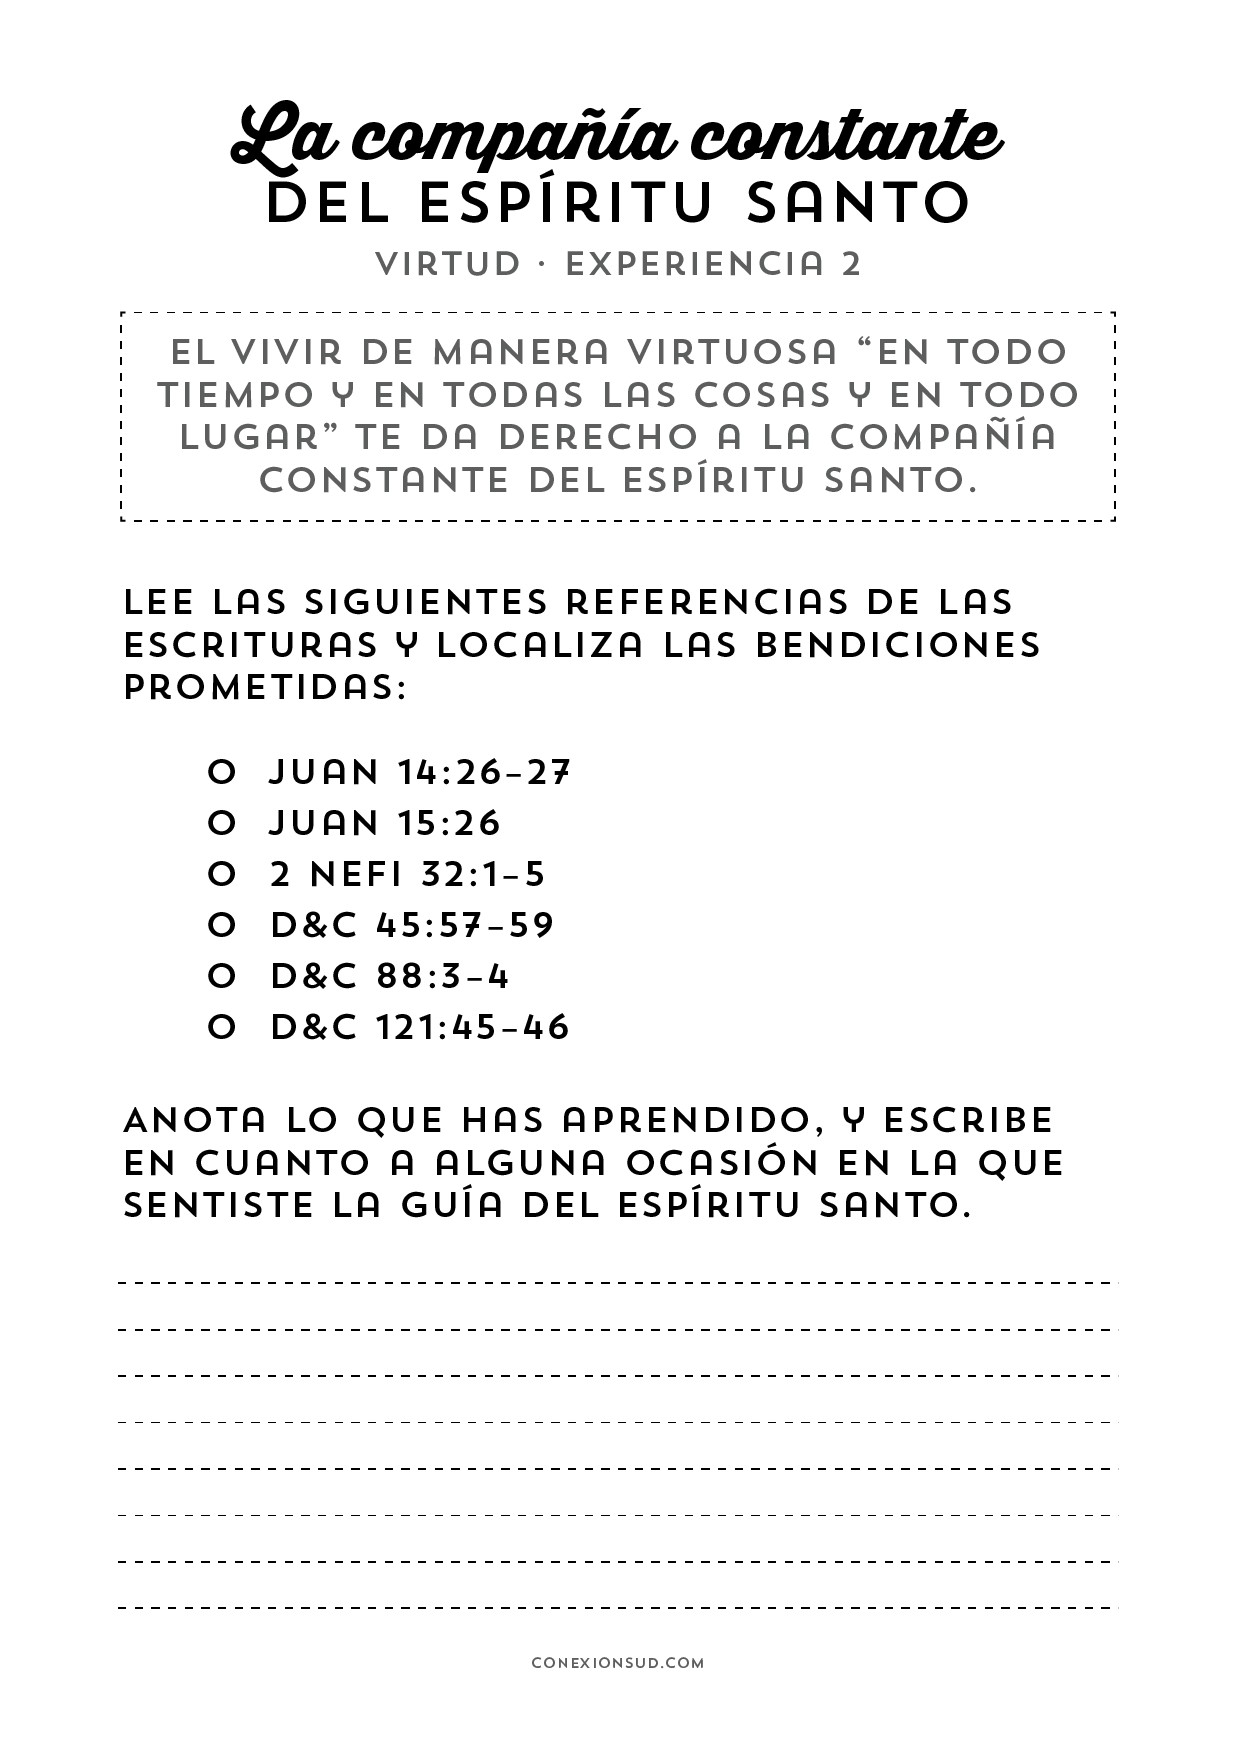 Calendario Febrero 2019 Con Santoral Más Actual Virtud 2 Espiritu Santo Conexionsud Of Calendario Febrero 2019 Con Santoral Más Populares Clp 2018 2019 Pages 101 150 Text Version